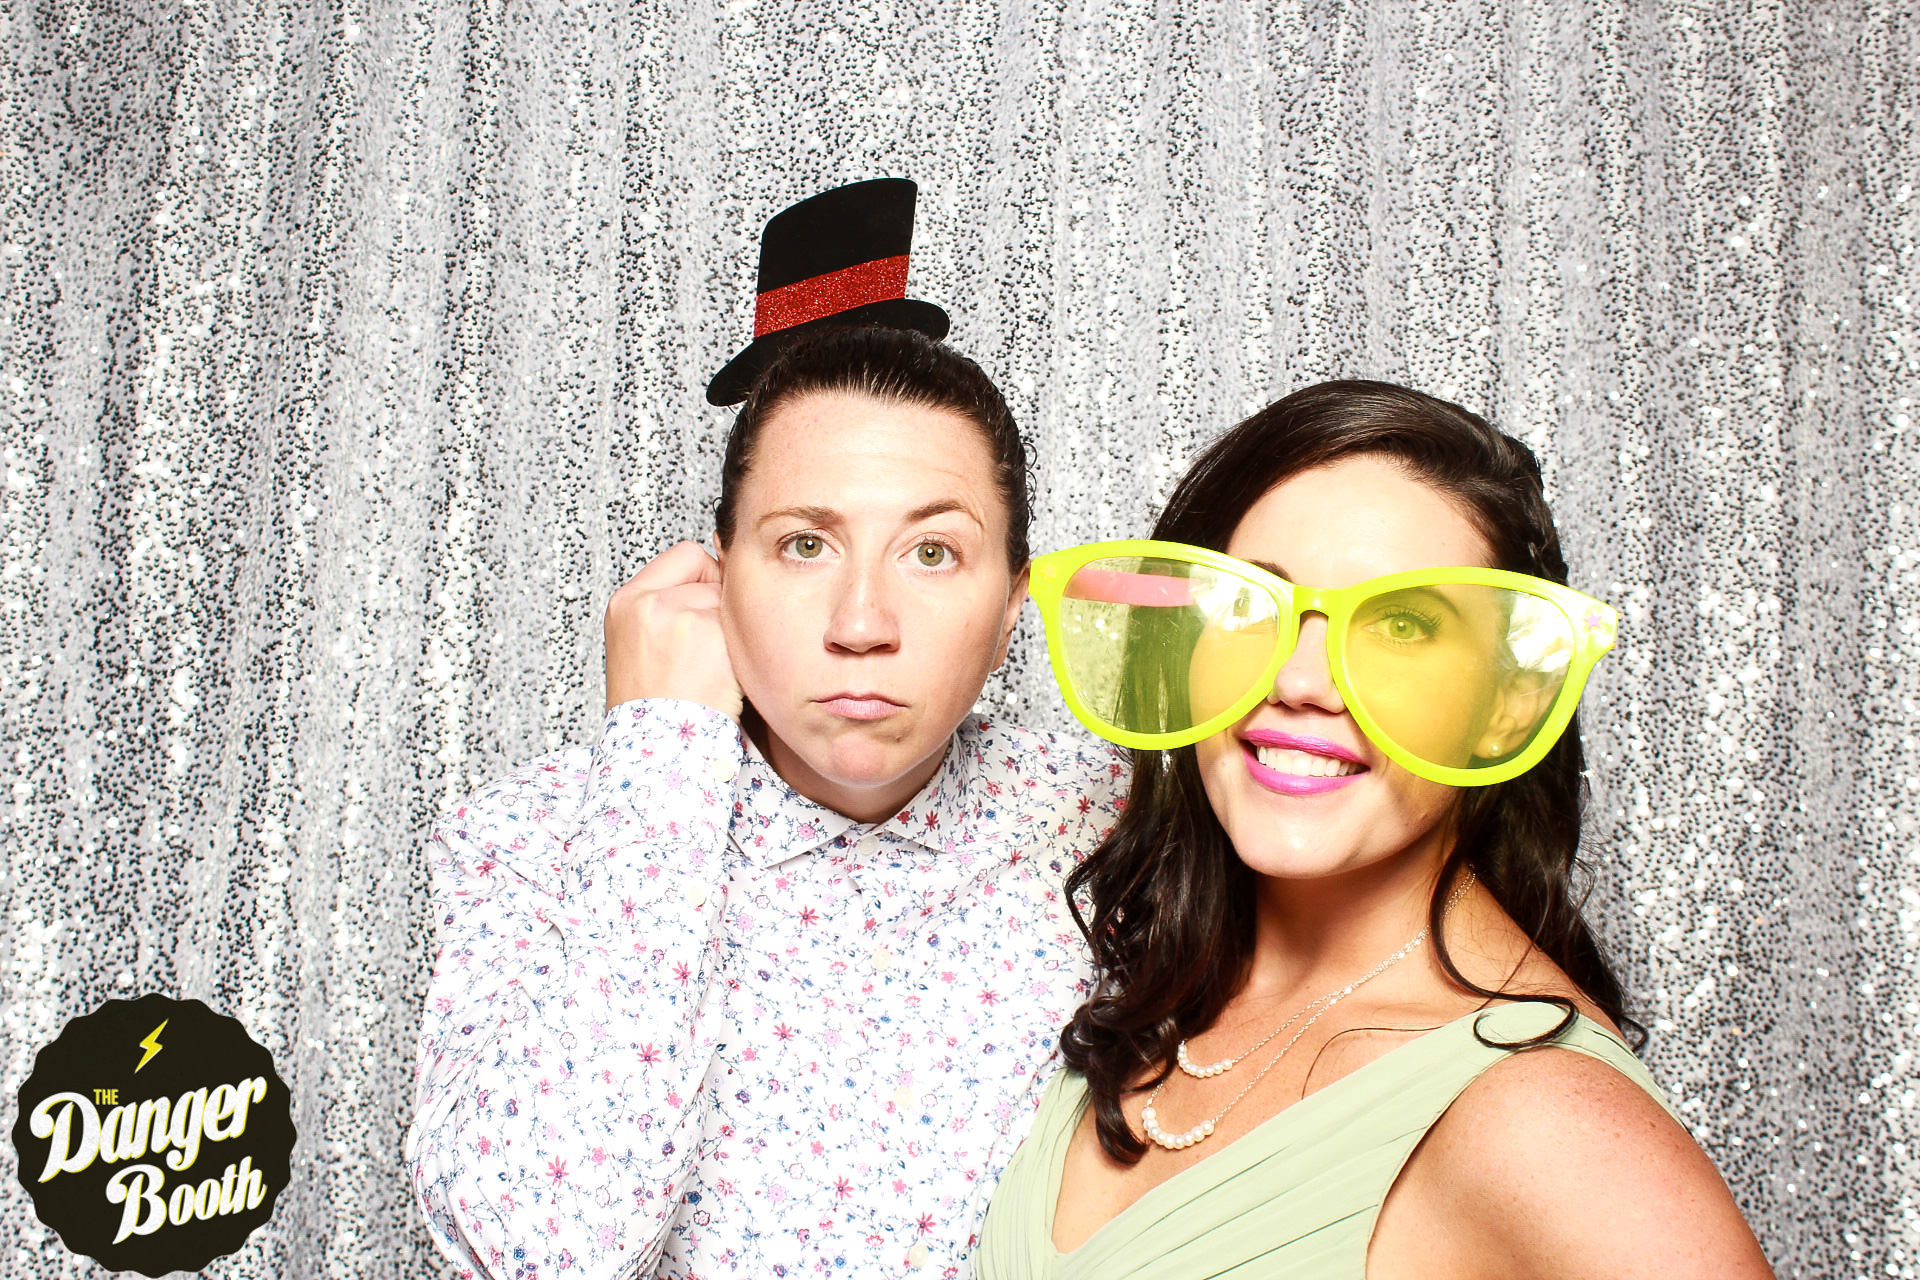 Wedding Photo Booth   The Danger Booth   Best Photo Booth Boston